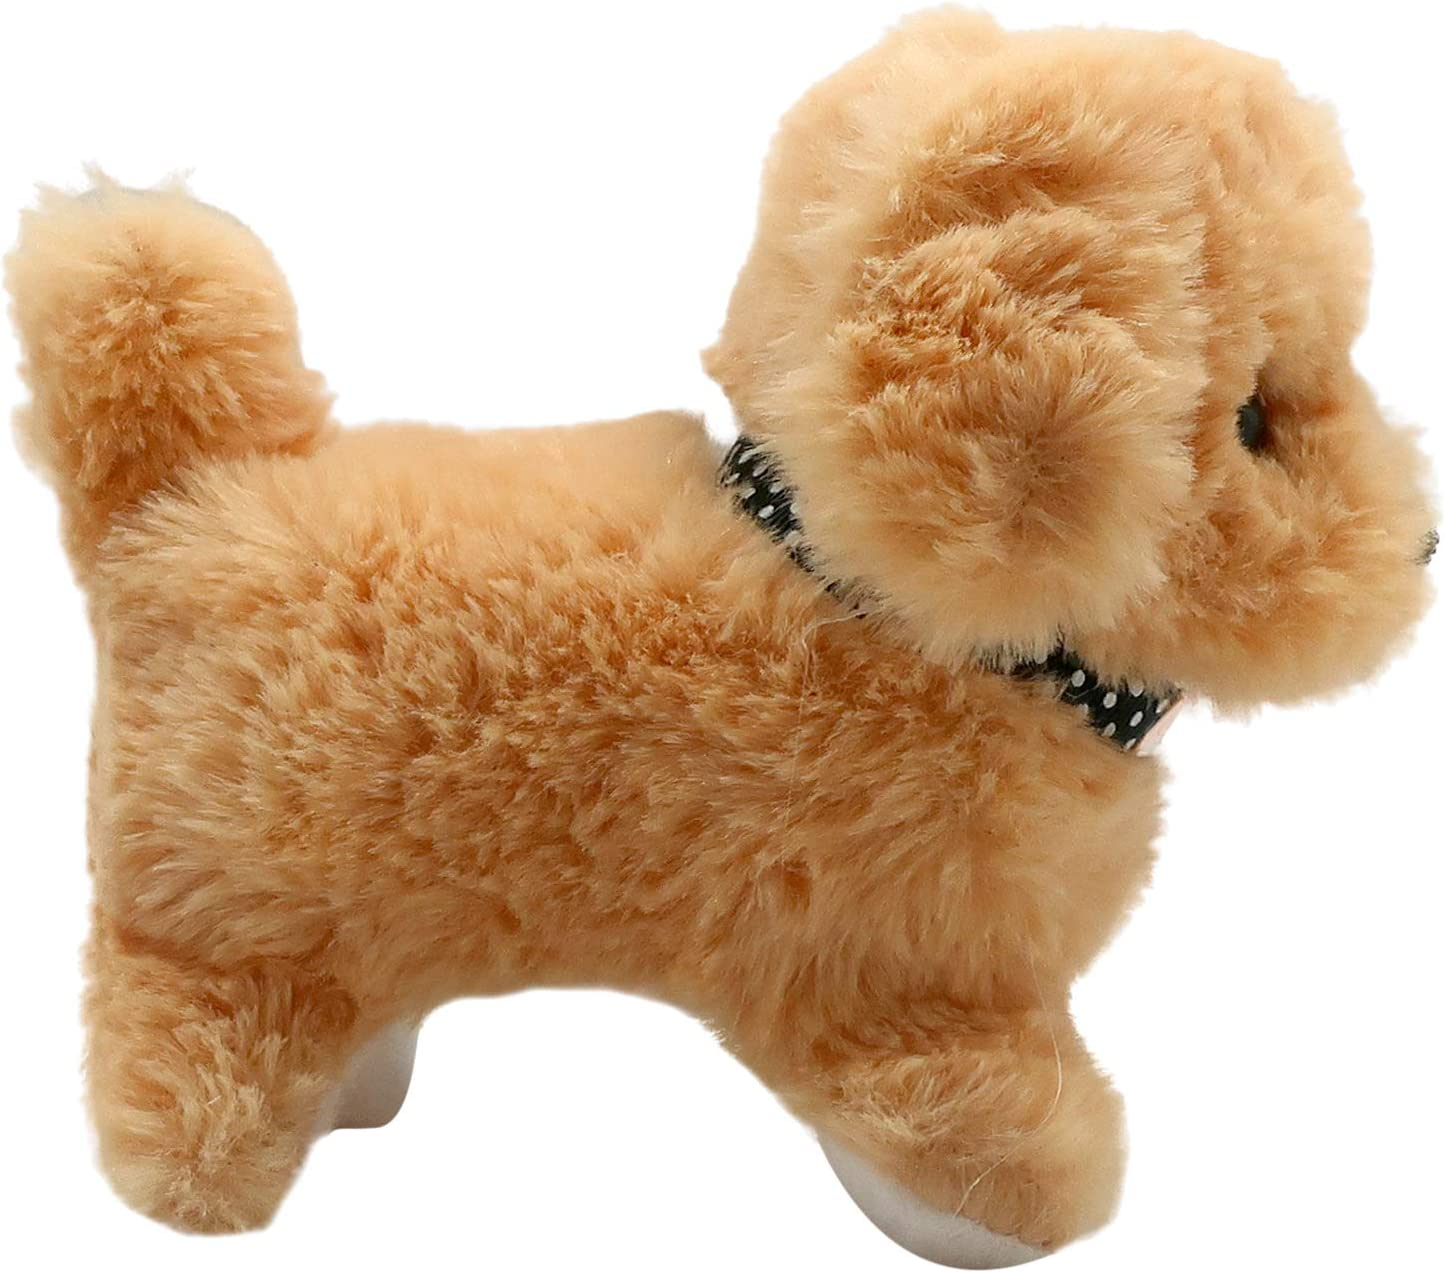 Wags its Tail Toy Dog Brown Forest /& Twelfth Kids Interactive Plush Puppy Girls and Barks for Kids Walks Ideal for Pet Allergic Children Boys Aged 3+ Years